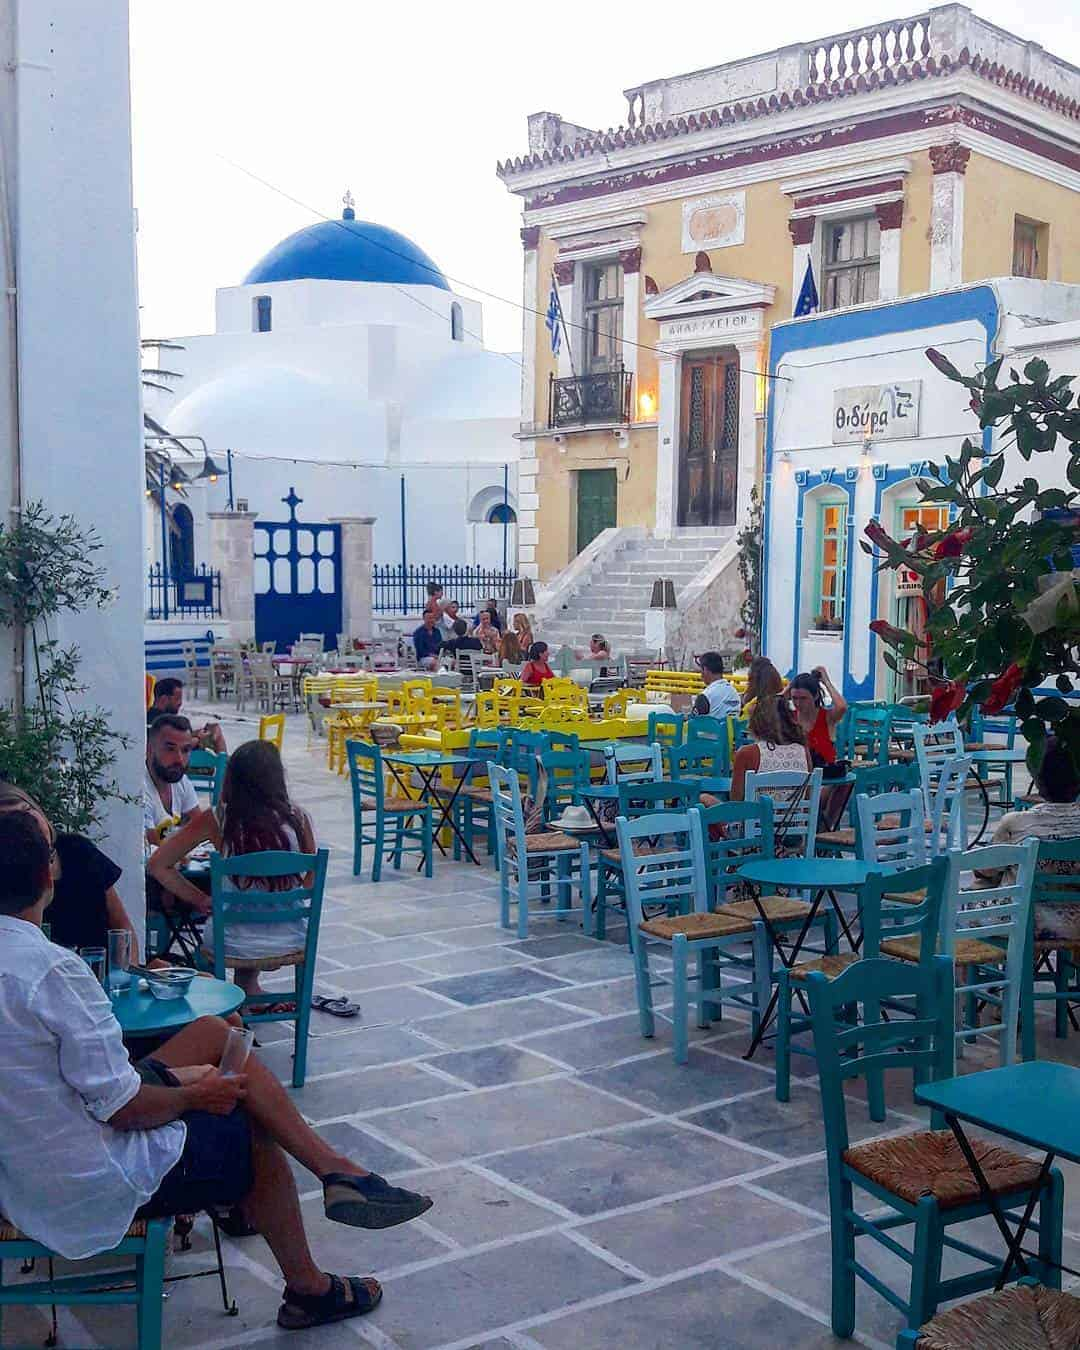 Ouzo is the national drink of Greece